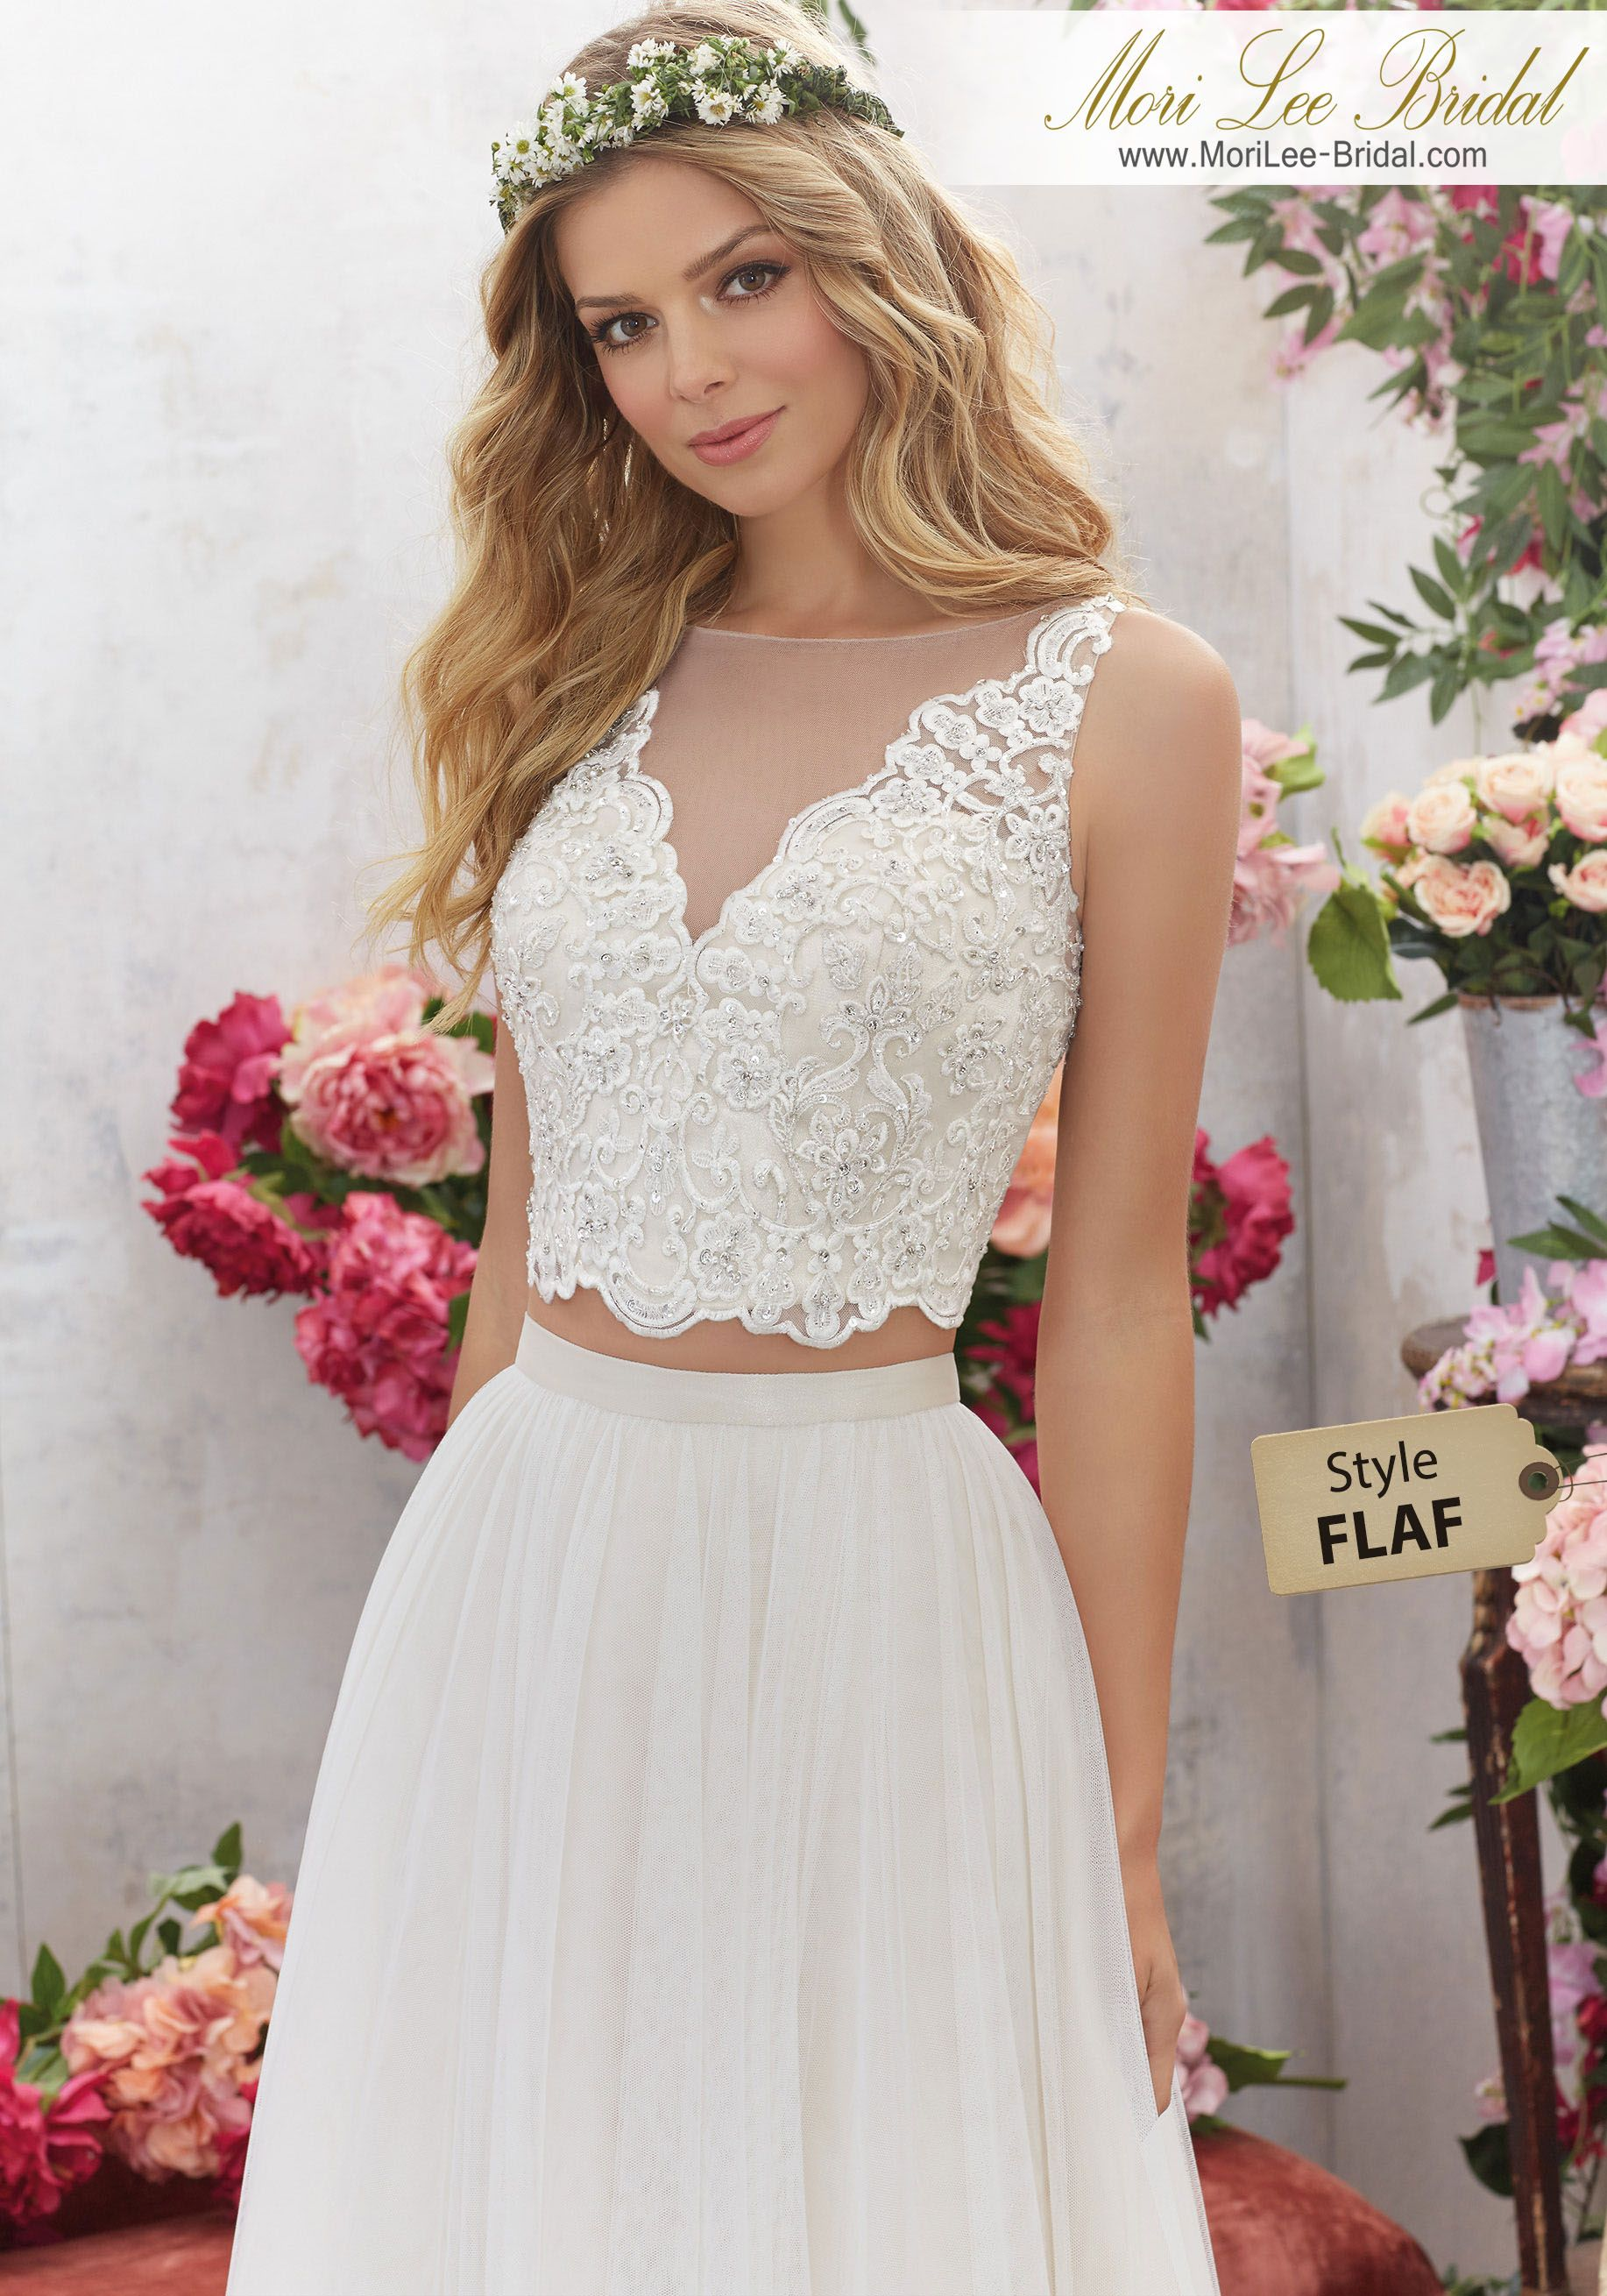 Style flaf melina wedding dress perfect for the boho bride this two